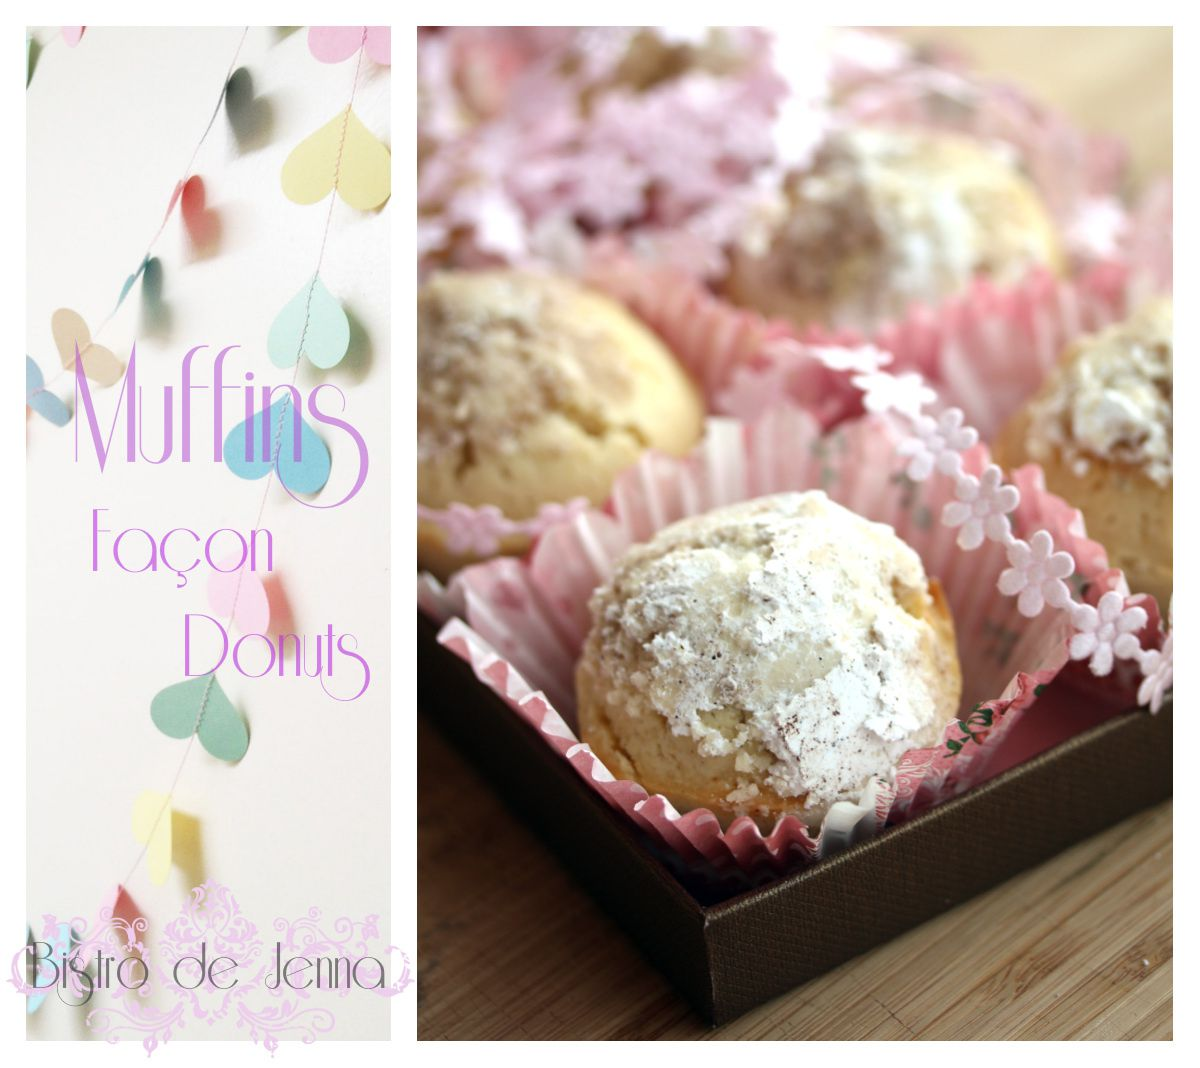 Muffins façon Donuts